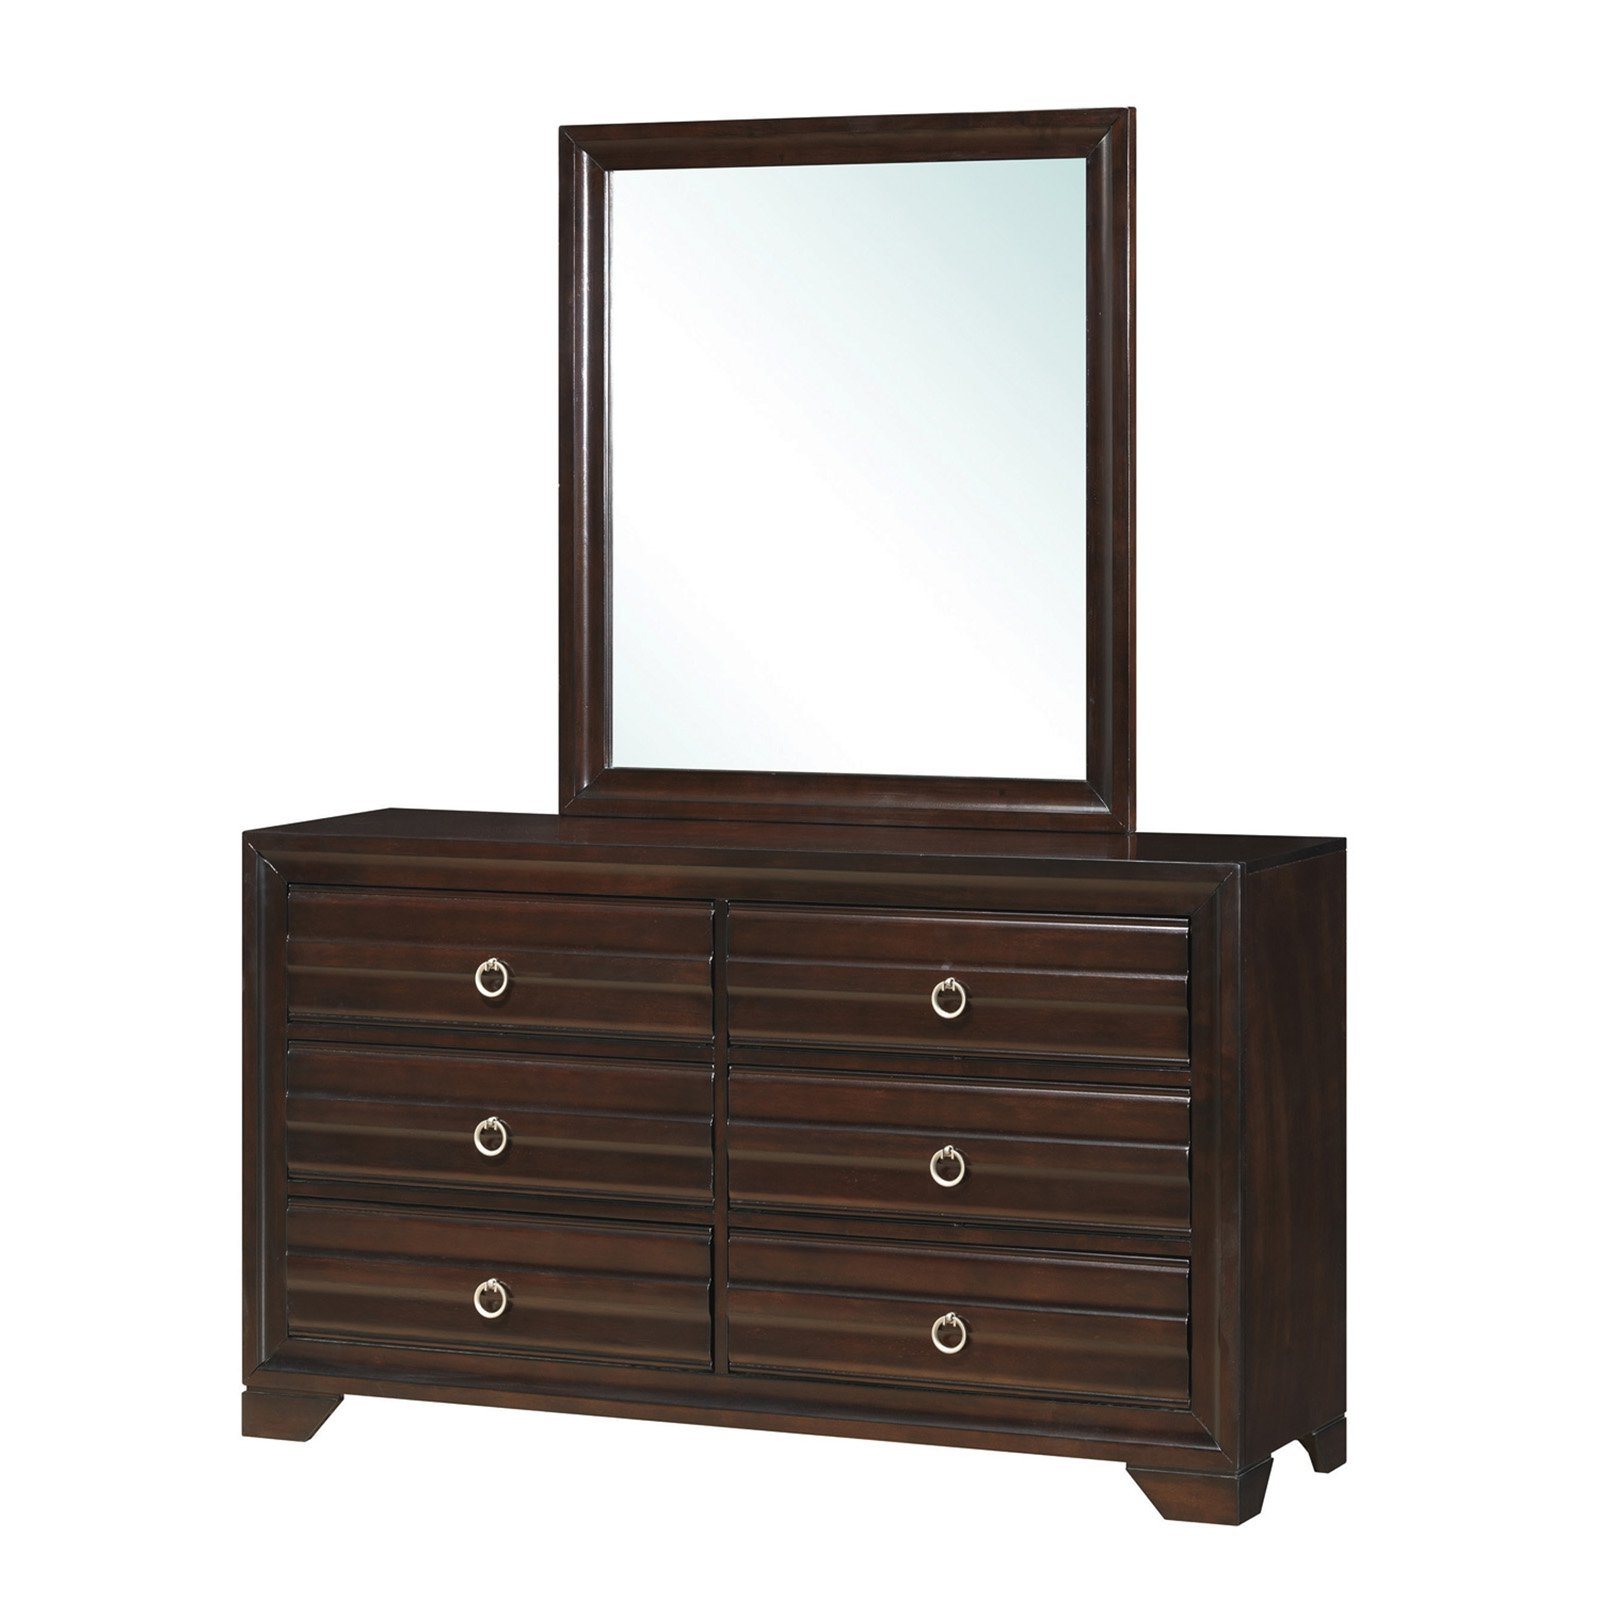 Coaster Company Home Furnishings Mirror (Cappuccino) by Overstock